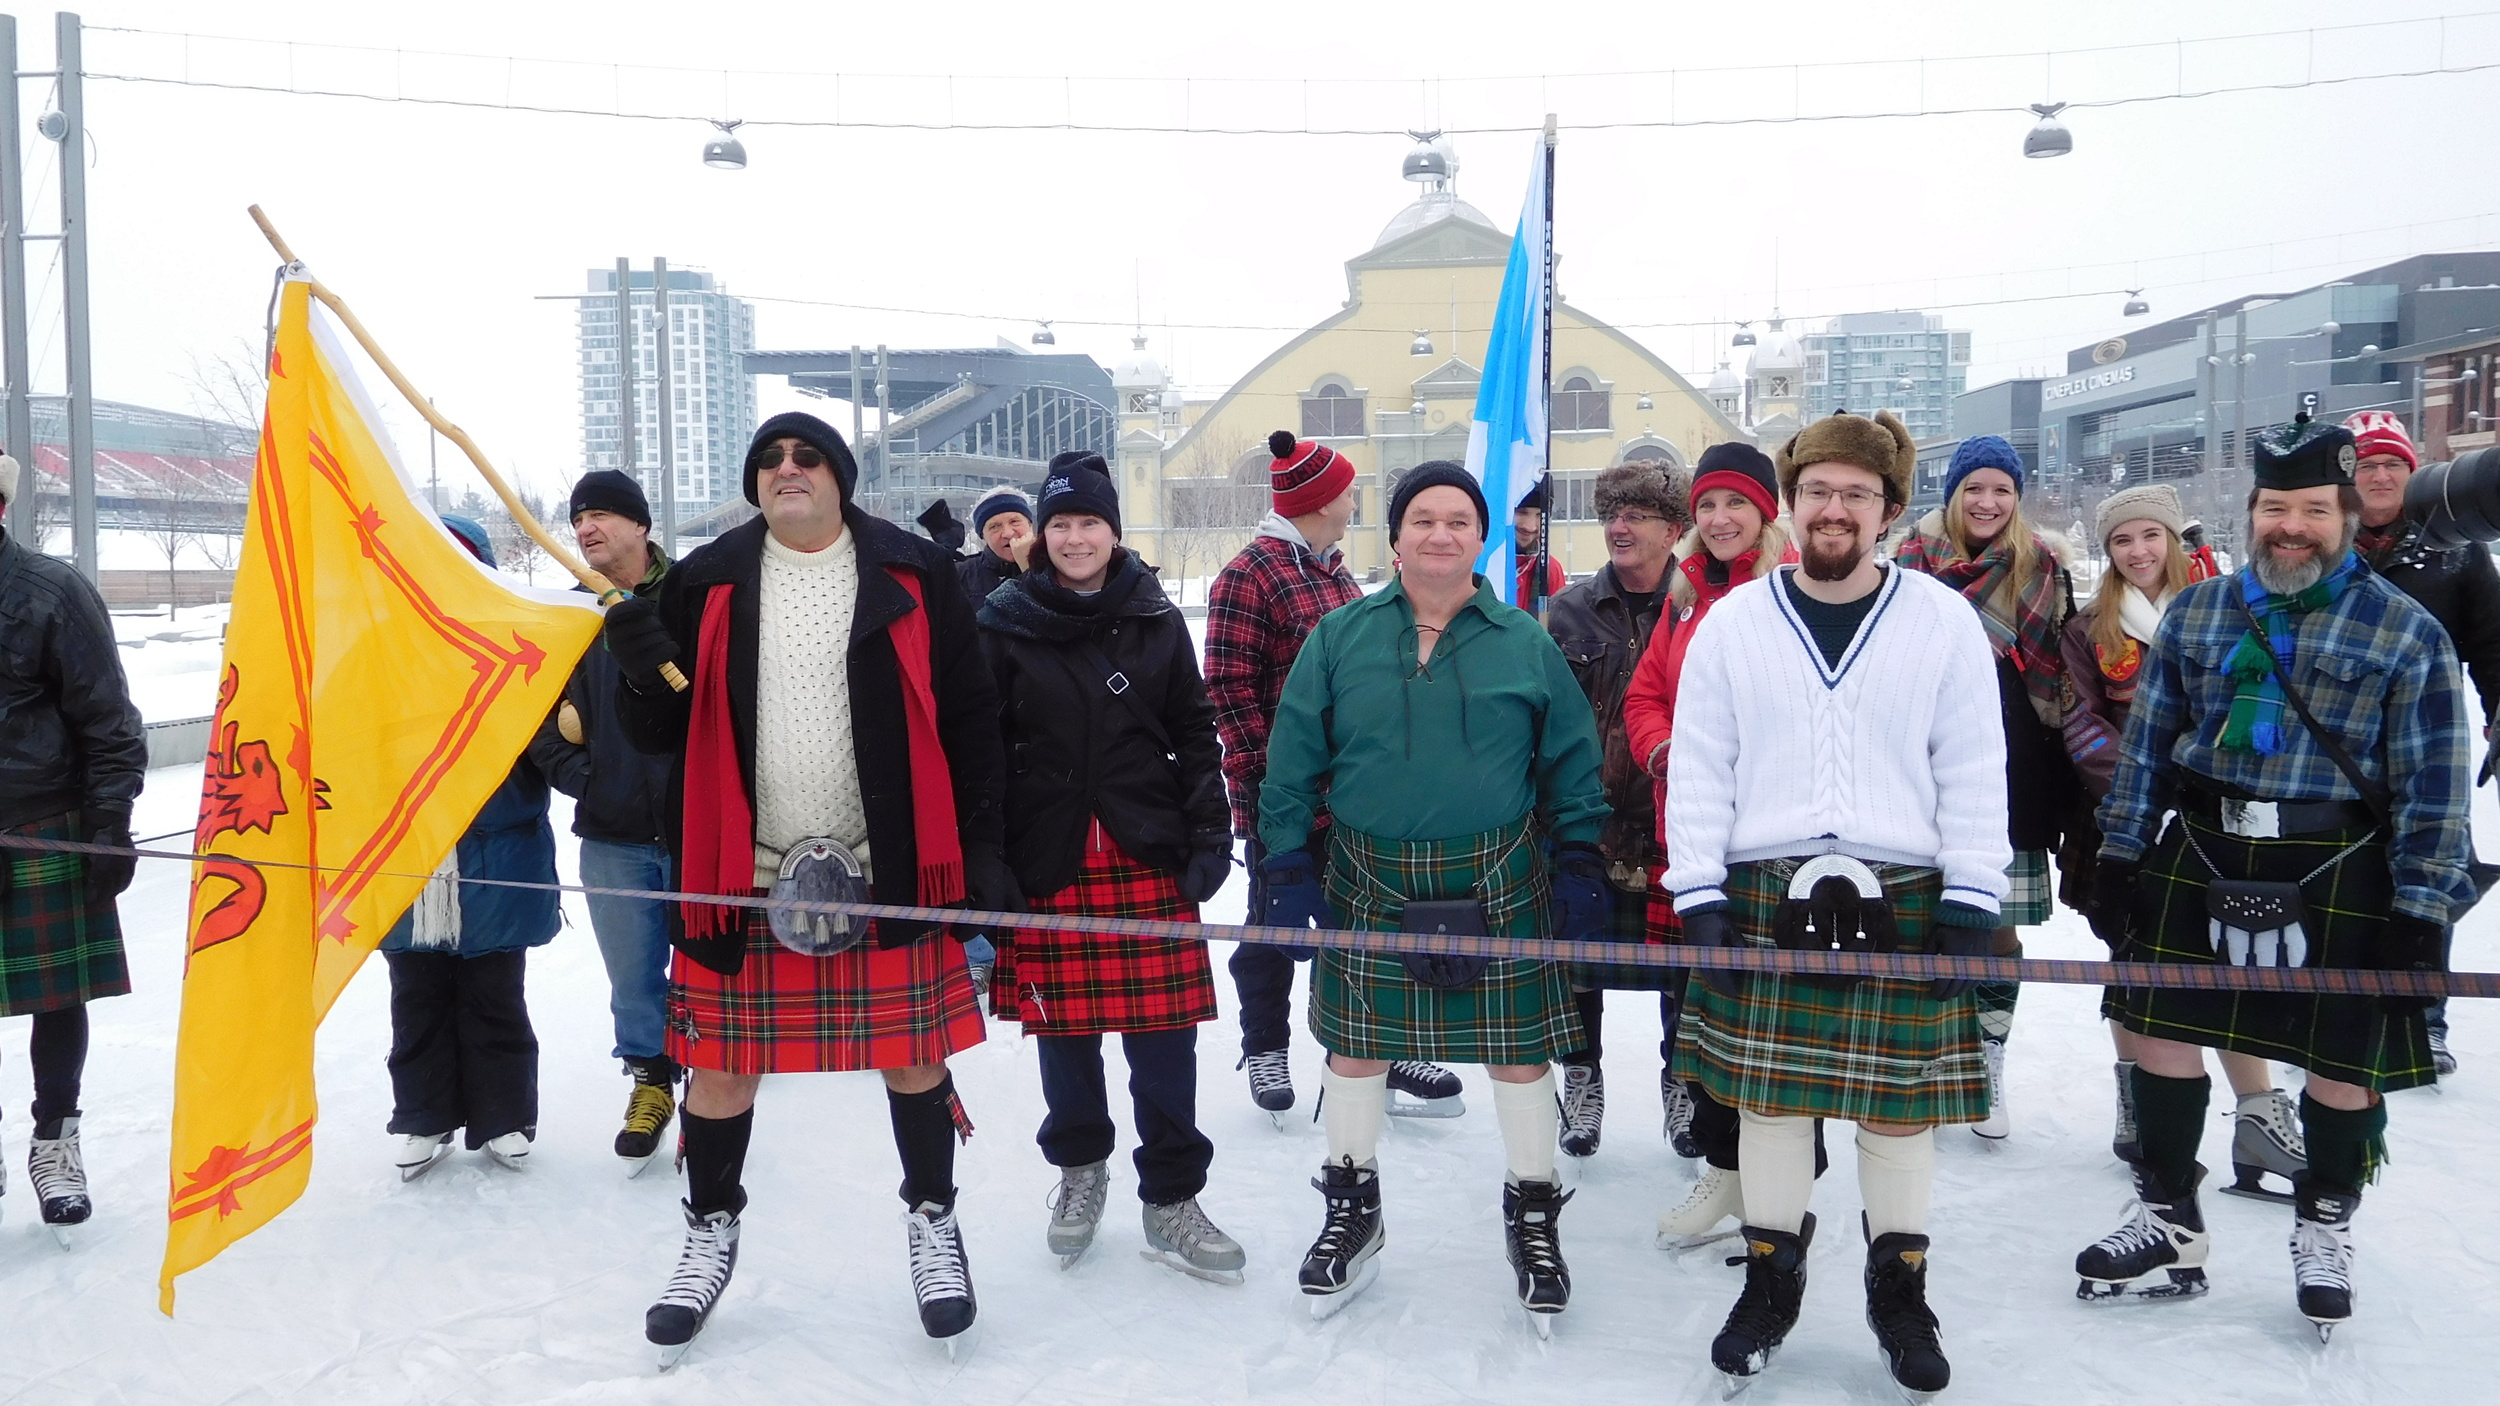 Skaters begin to gather at the starting line...